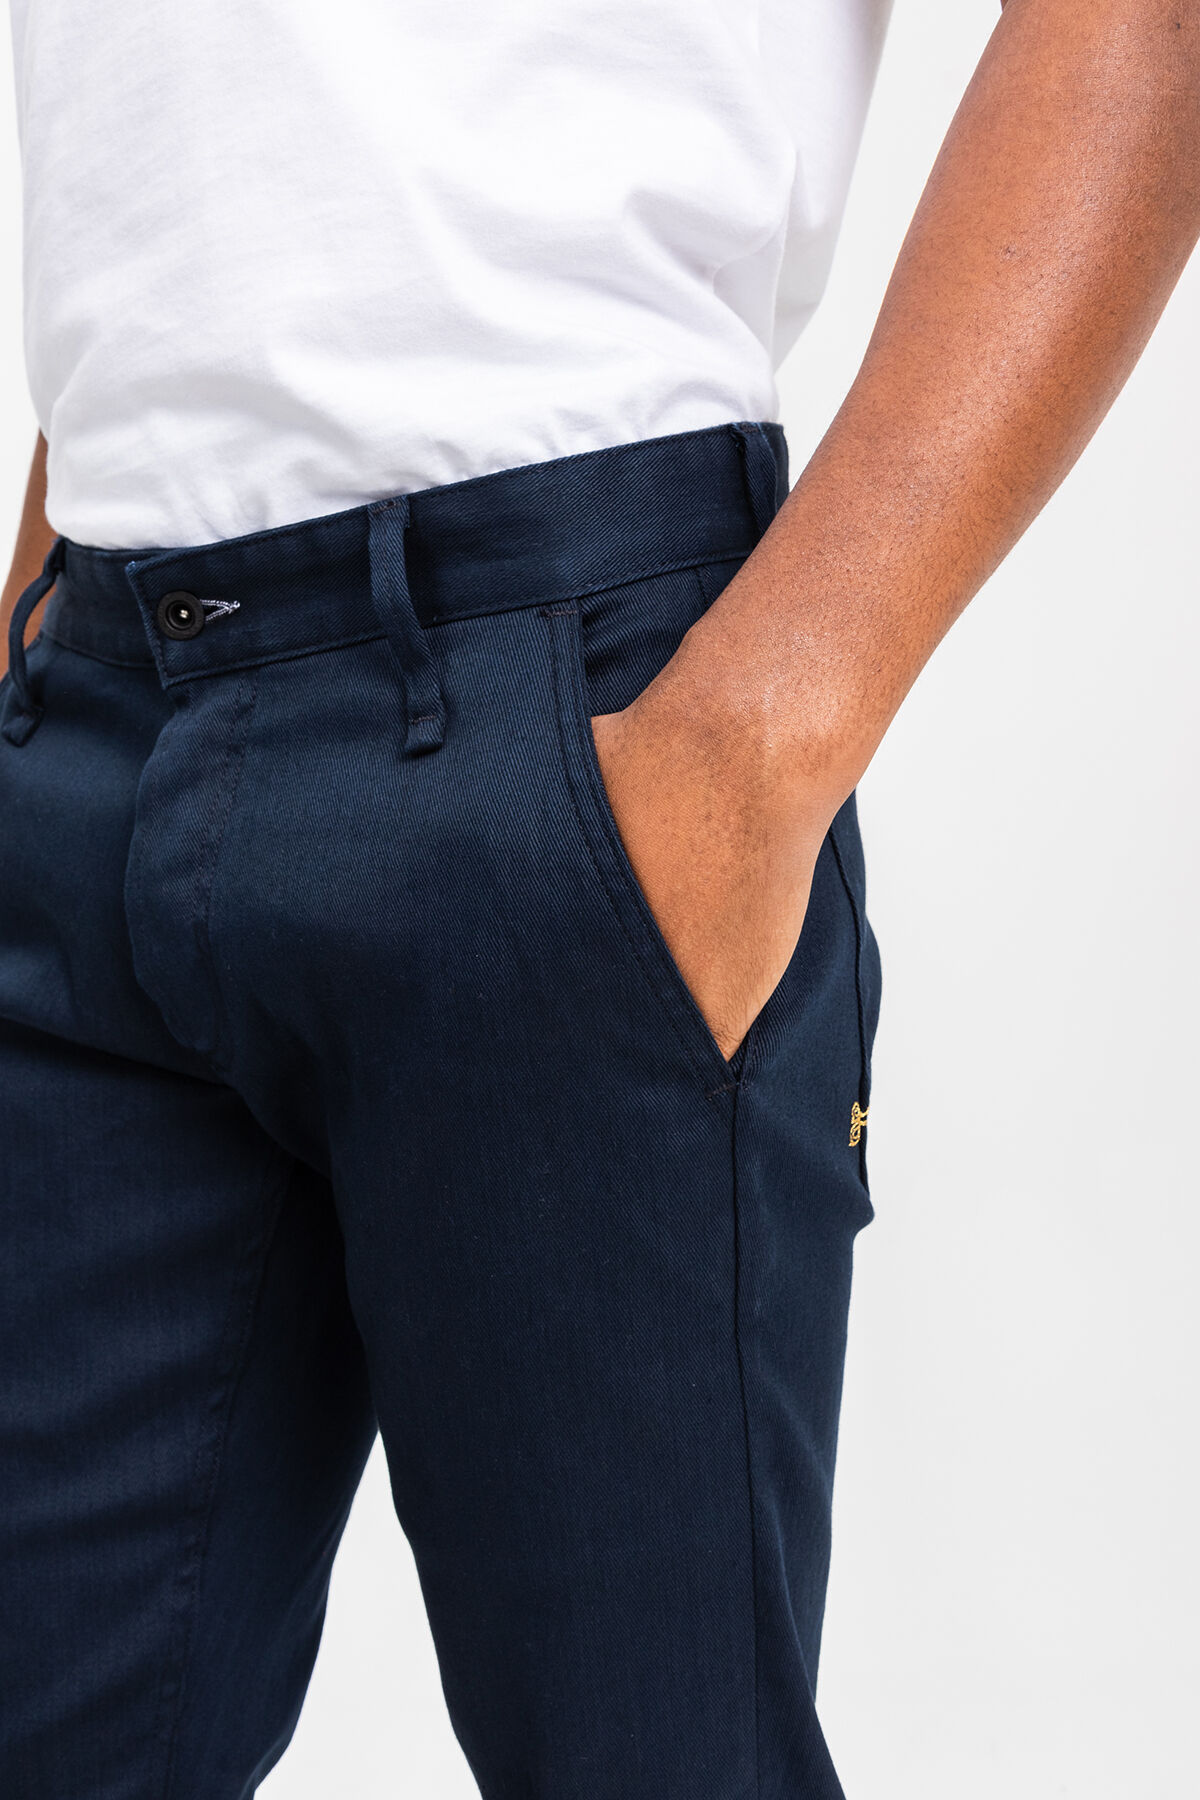 YORK Cotton & Modal blend - Slim, Tapered Fit